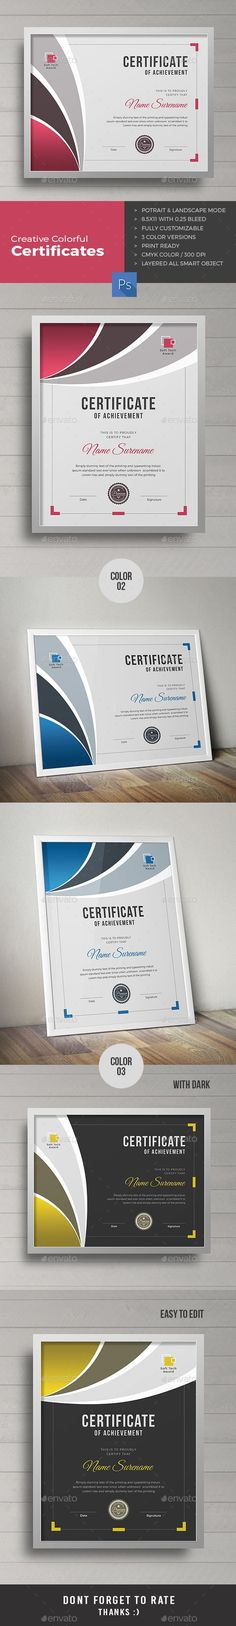 A3 Certificate Template Certificate, Template and Certificate design - business certificates templates